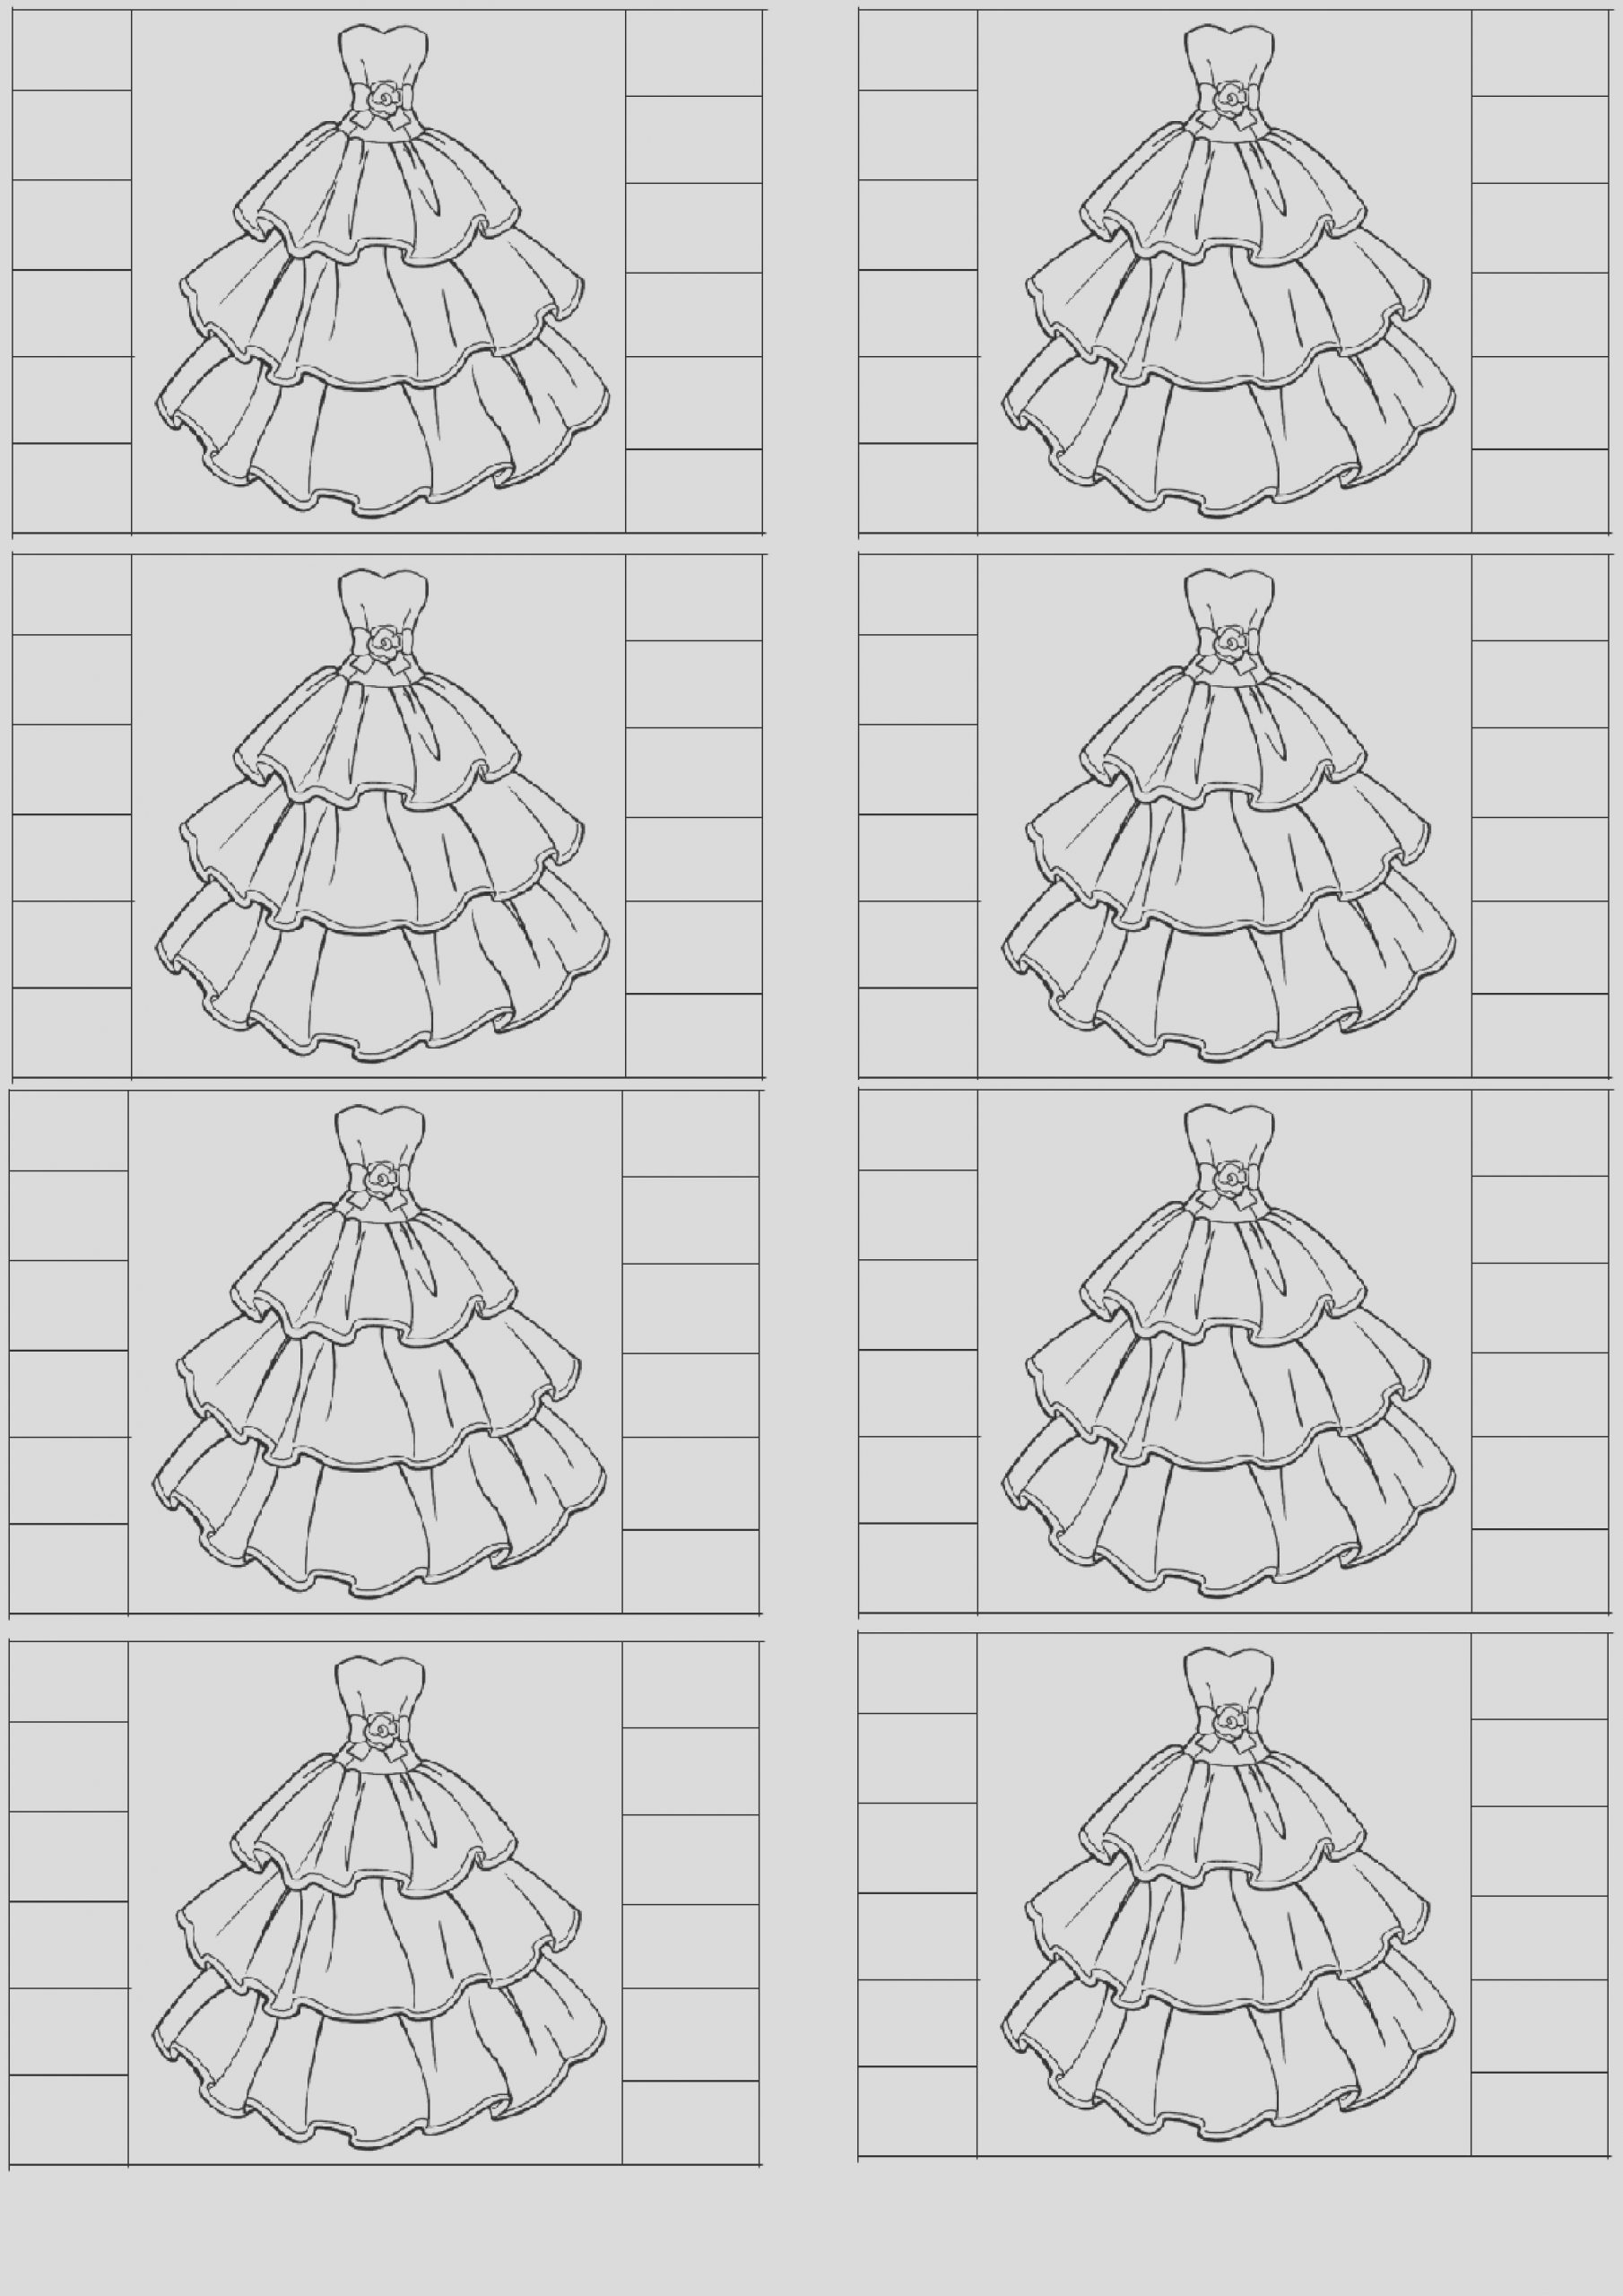 coloring with markers marker coloring pages coloring pages to download and print with coloring markers 1 1